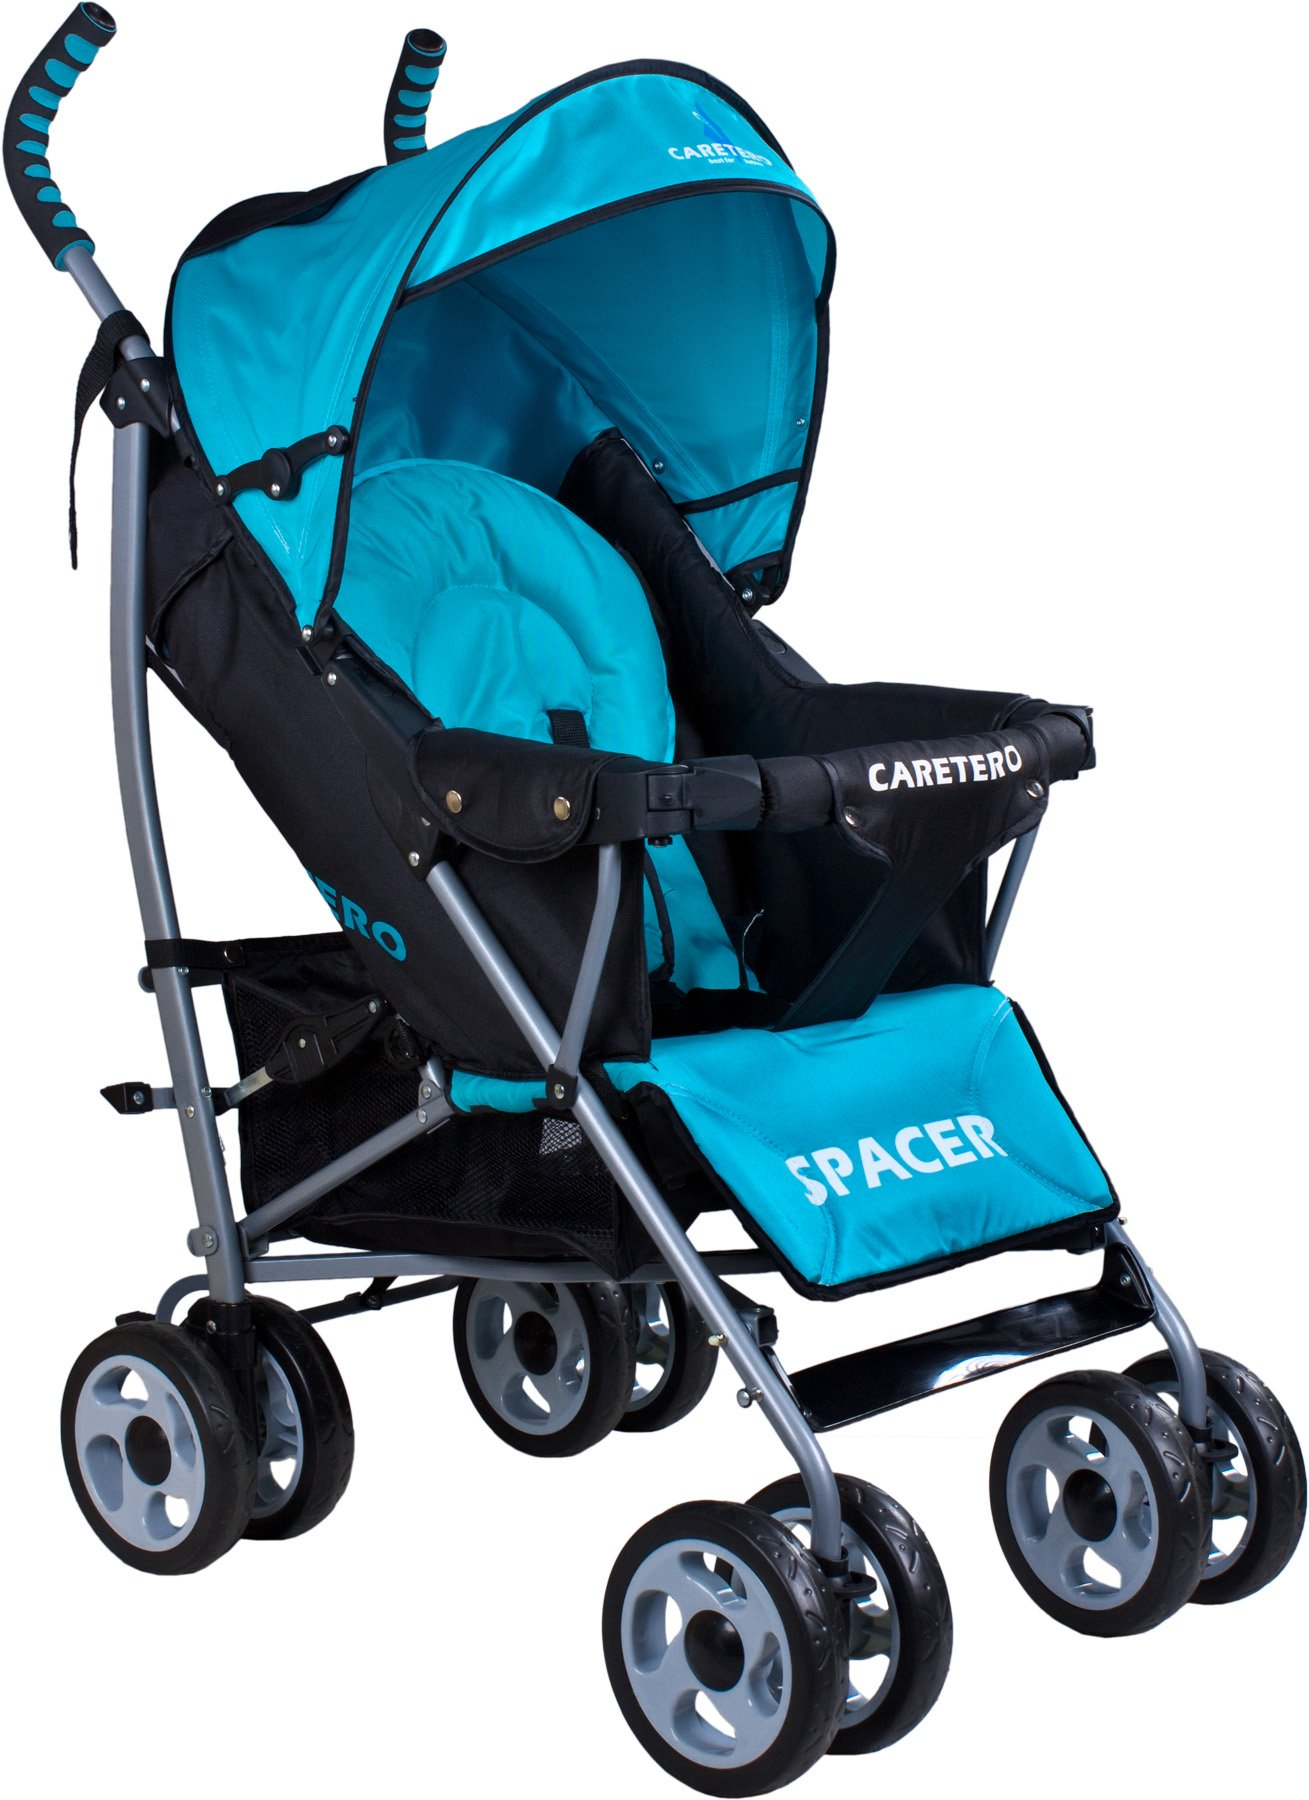 Коляска    Caretero  SPACER  BLUE